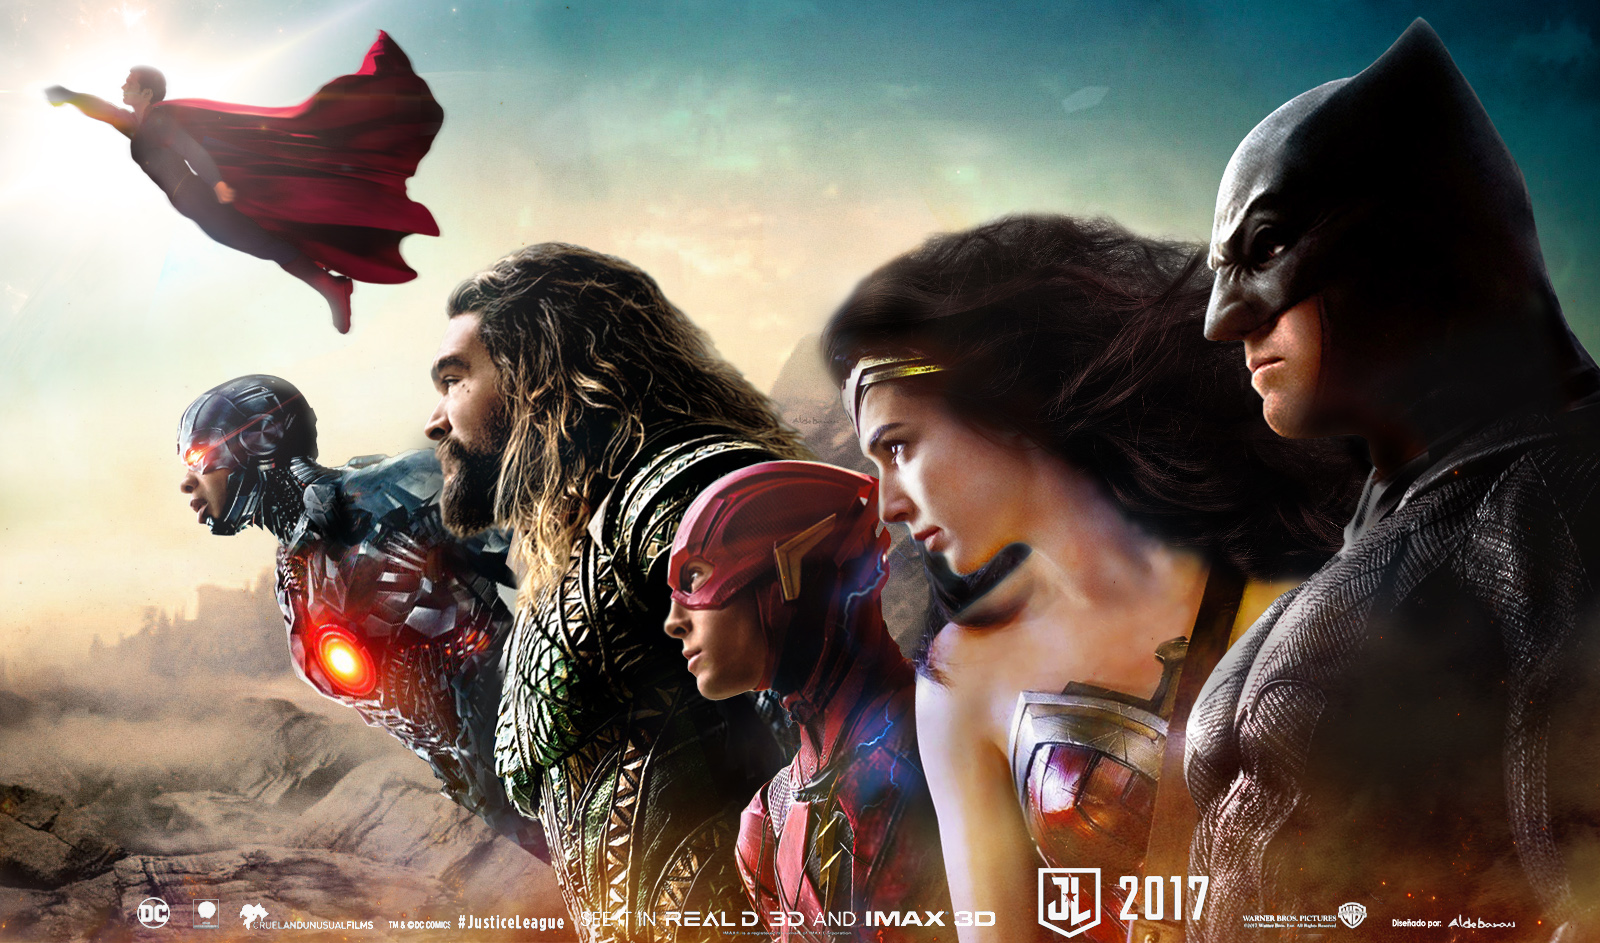 Justice league movie banner 2 by saintaldebaran on deviantart for Craft fairs near me november 2017